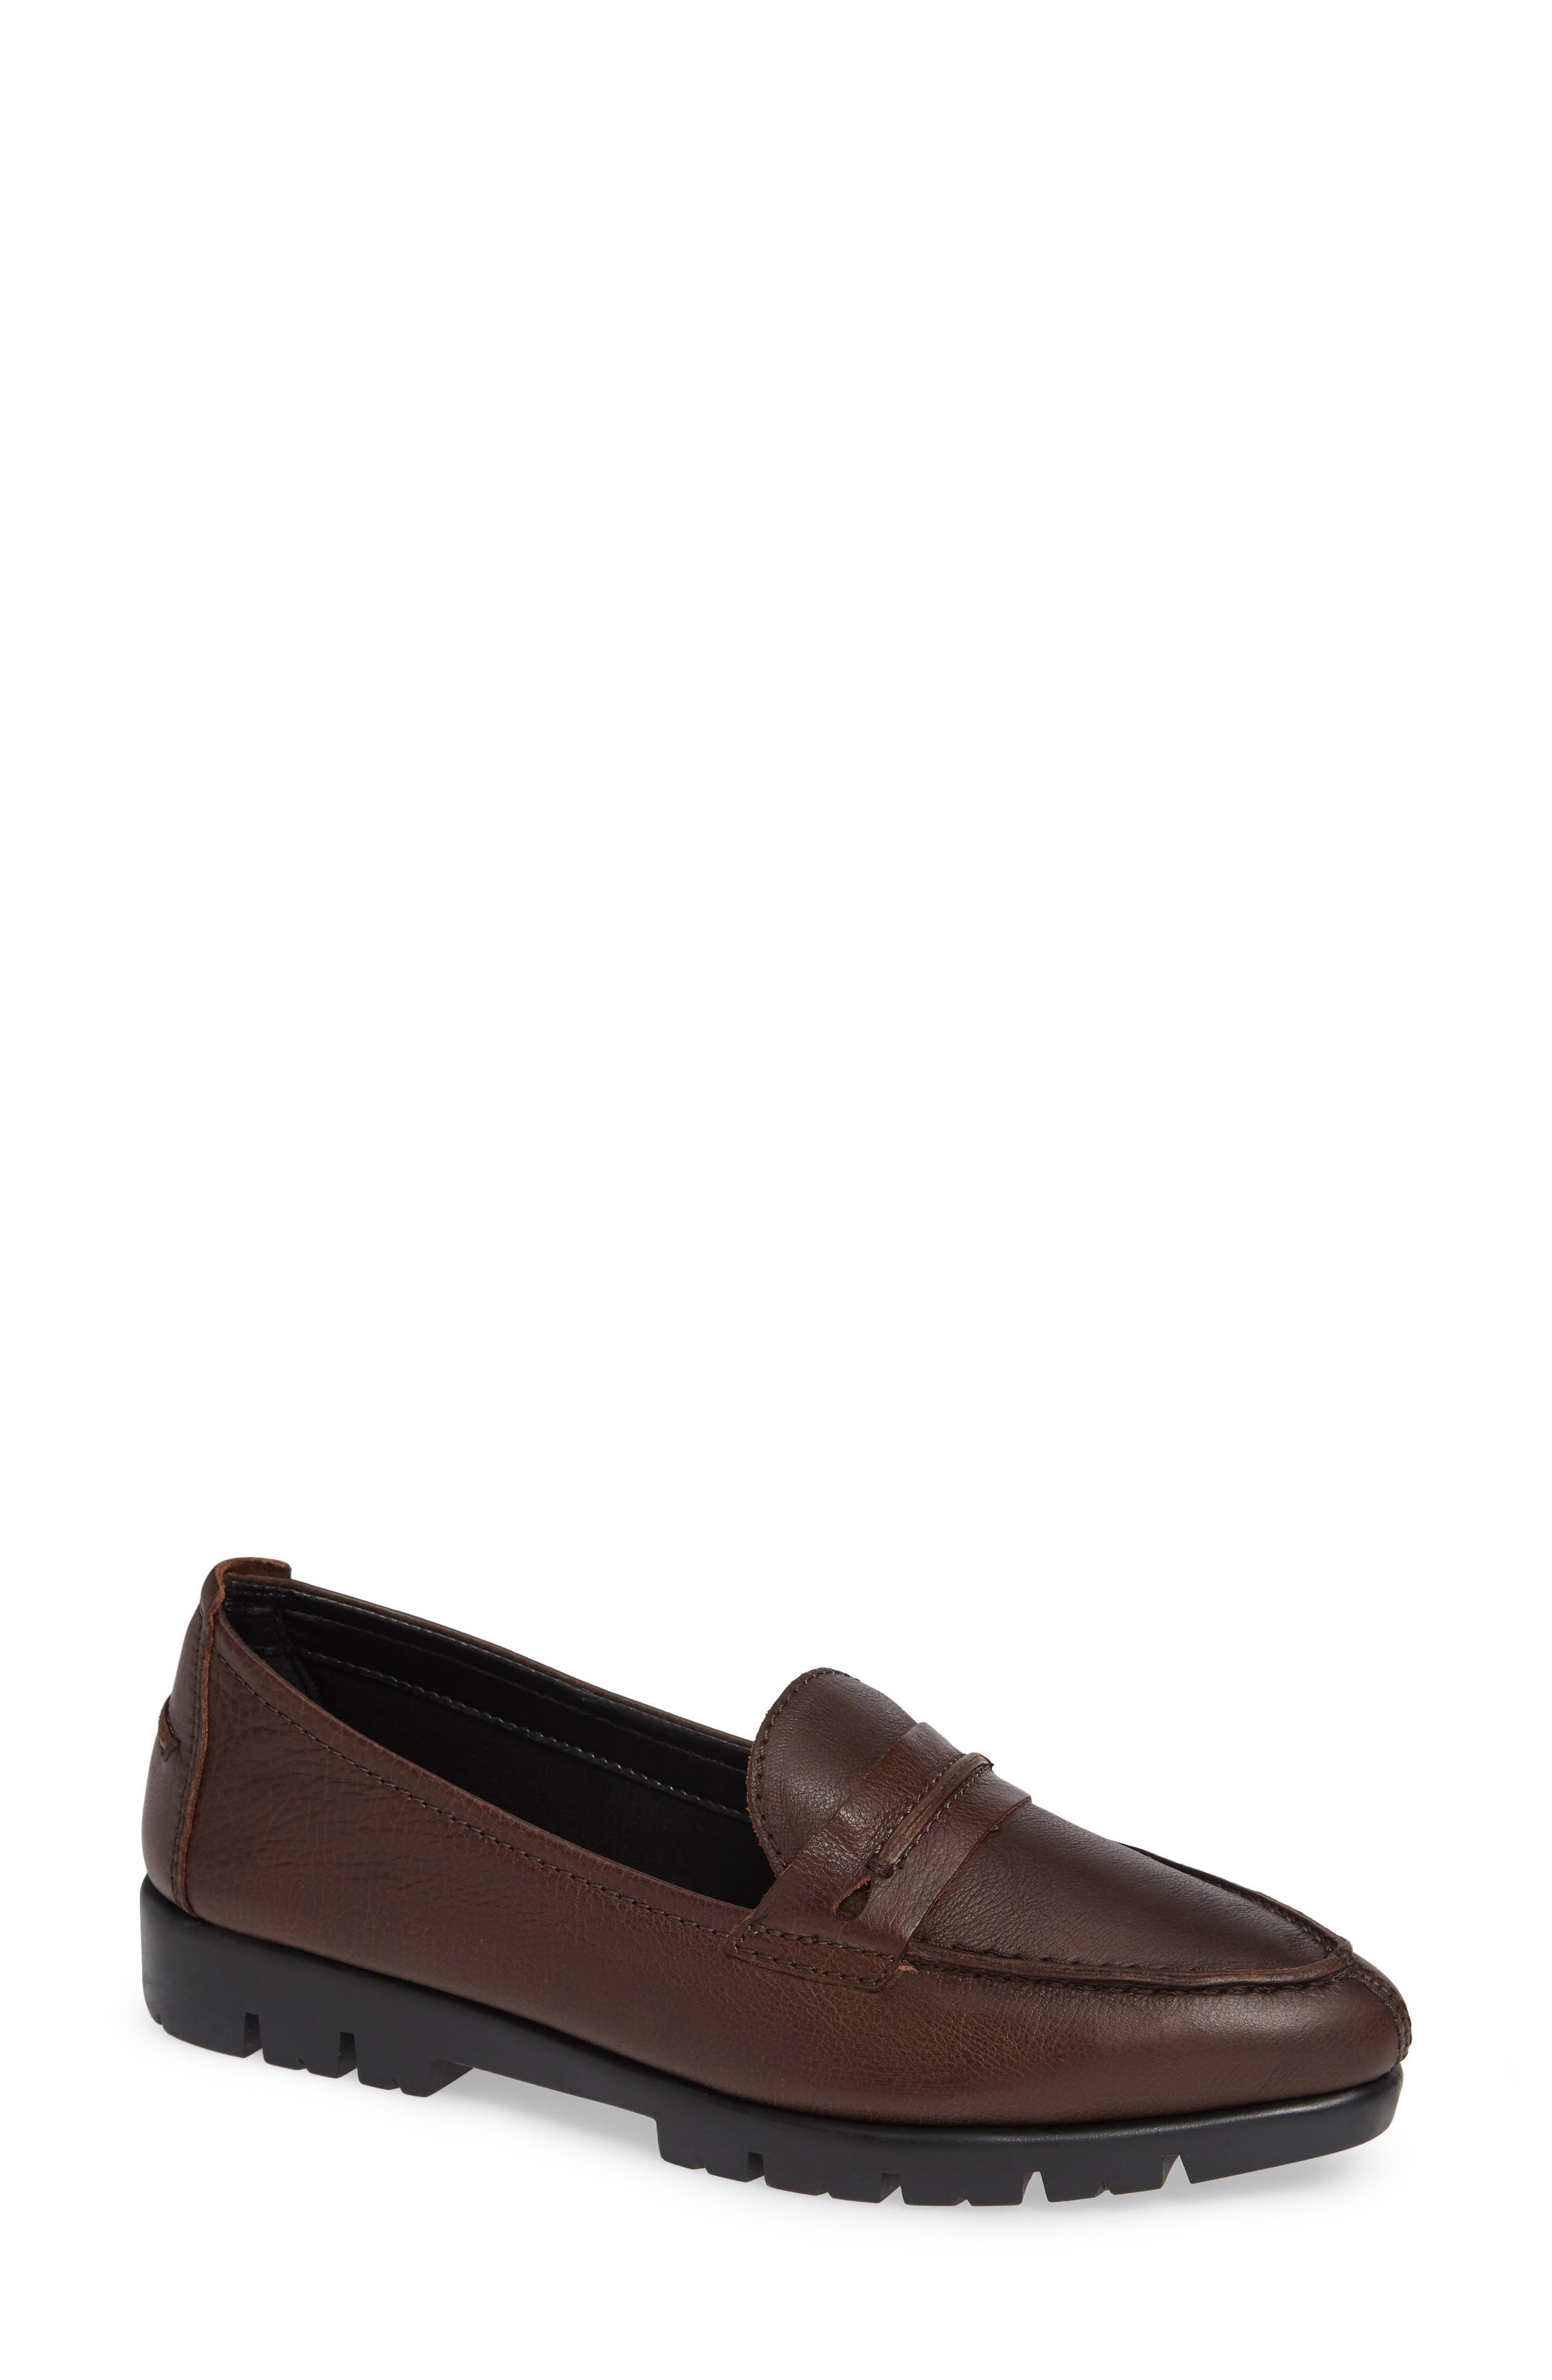 The Flexx Moc A Go Loafer- Brown